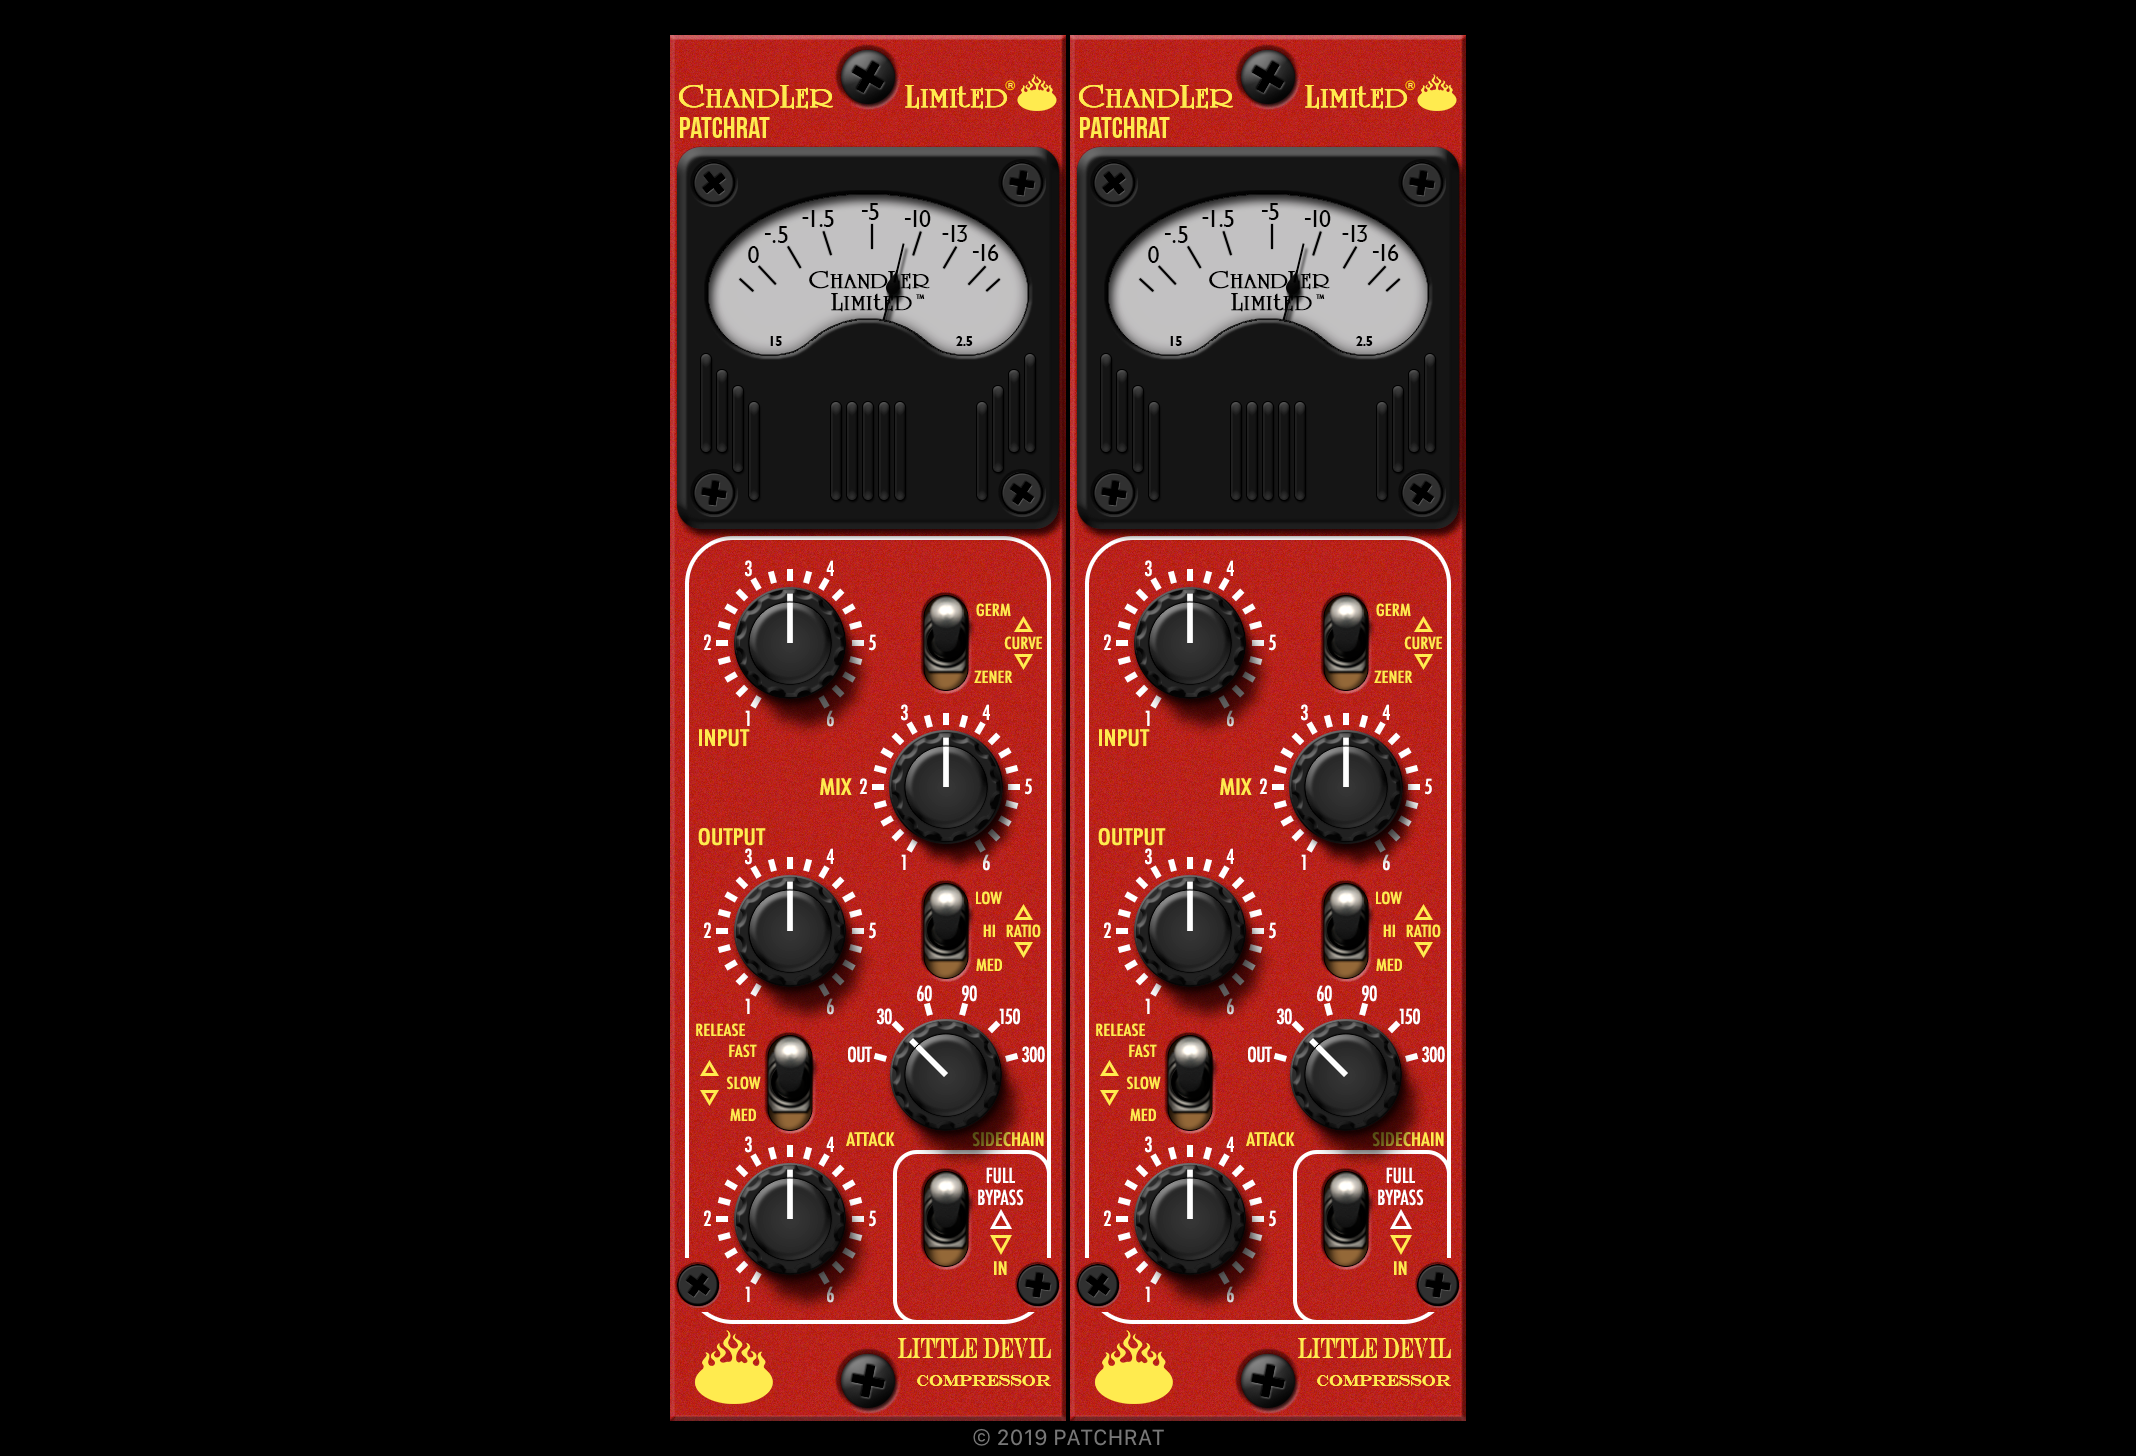 Chandler Limited Little Devil Compressor recall module for the Patchrat app